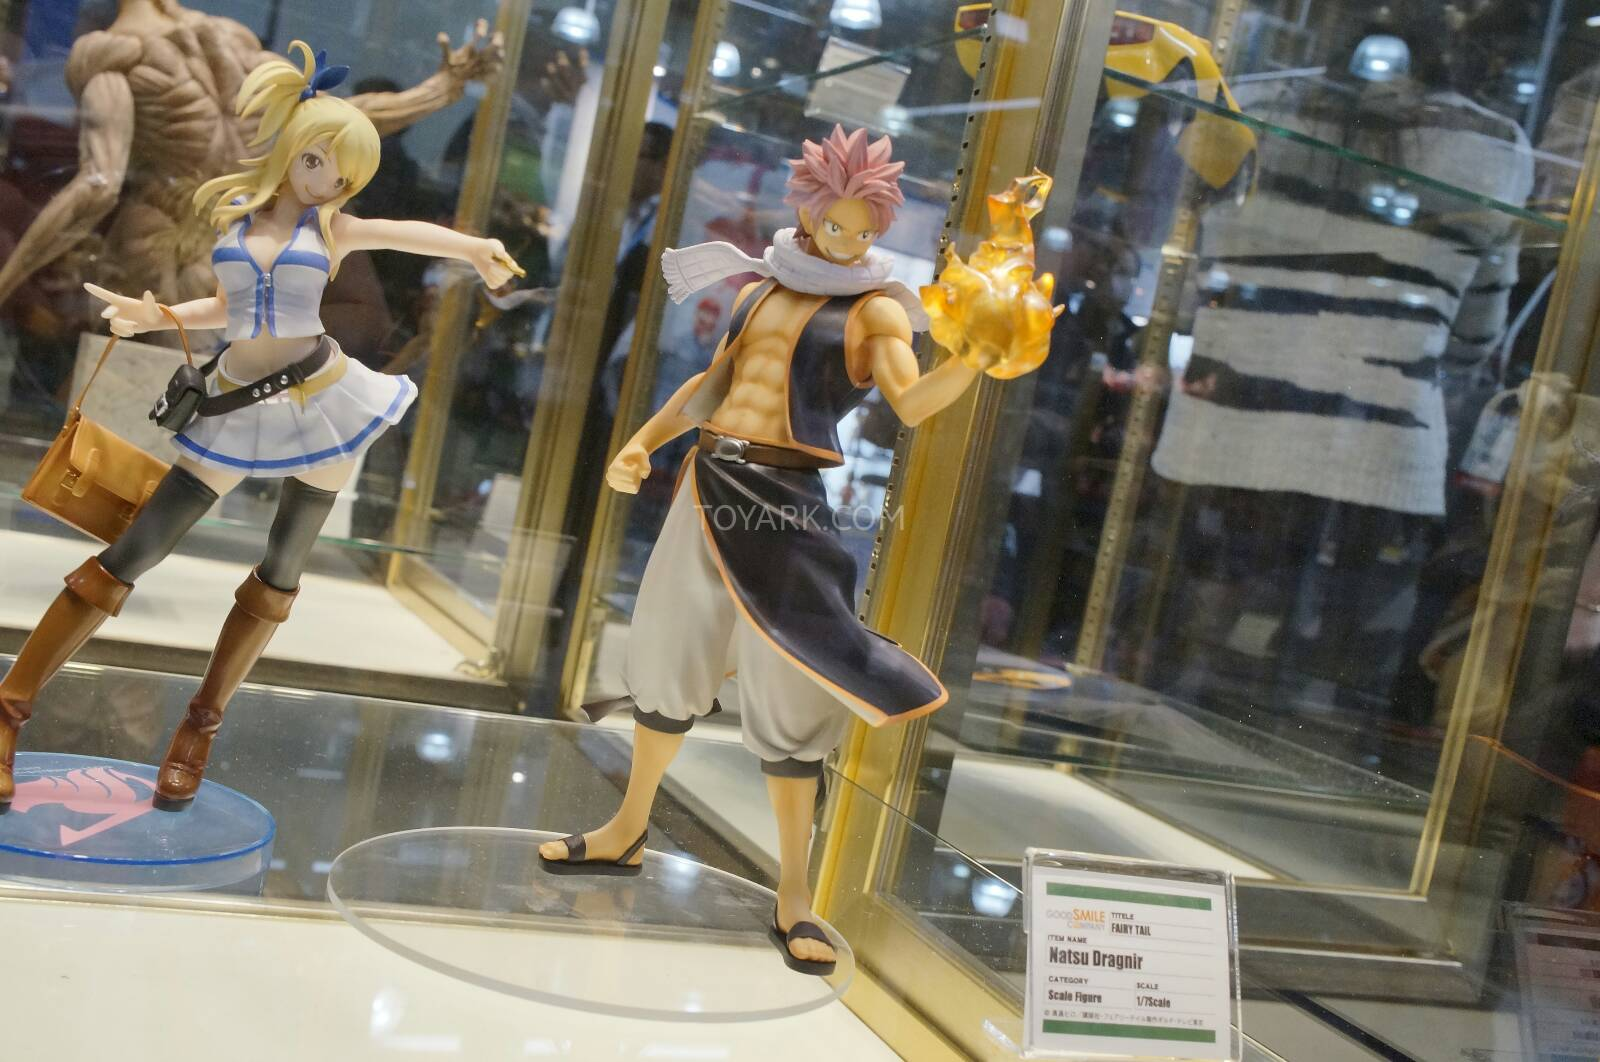 [EVENTO] Toy Fair 2014 - Good Smile Company / Max Factory / Phat Company / FREEing Toy-Fair-2014-Good-Smile-and-Max-Factory-Display-057